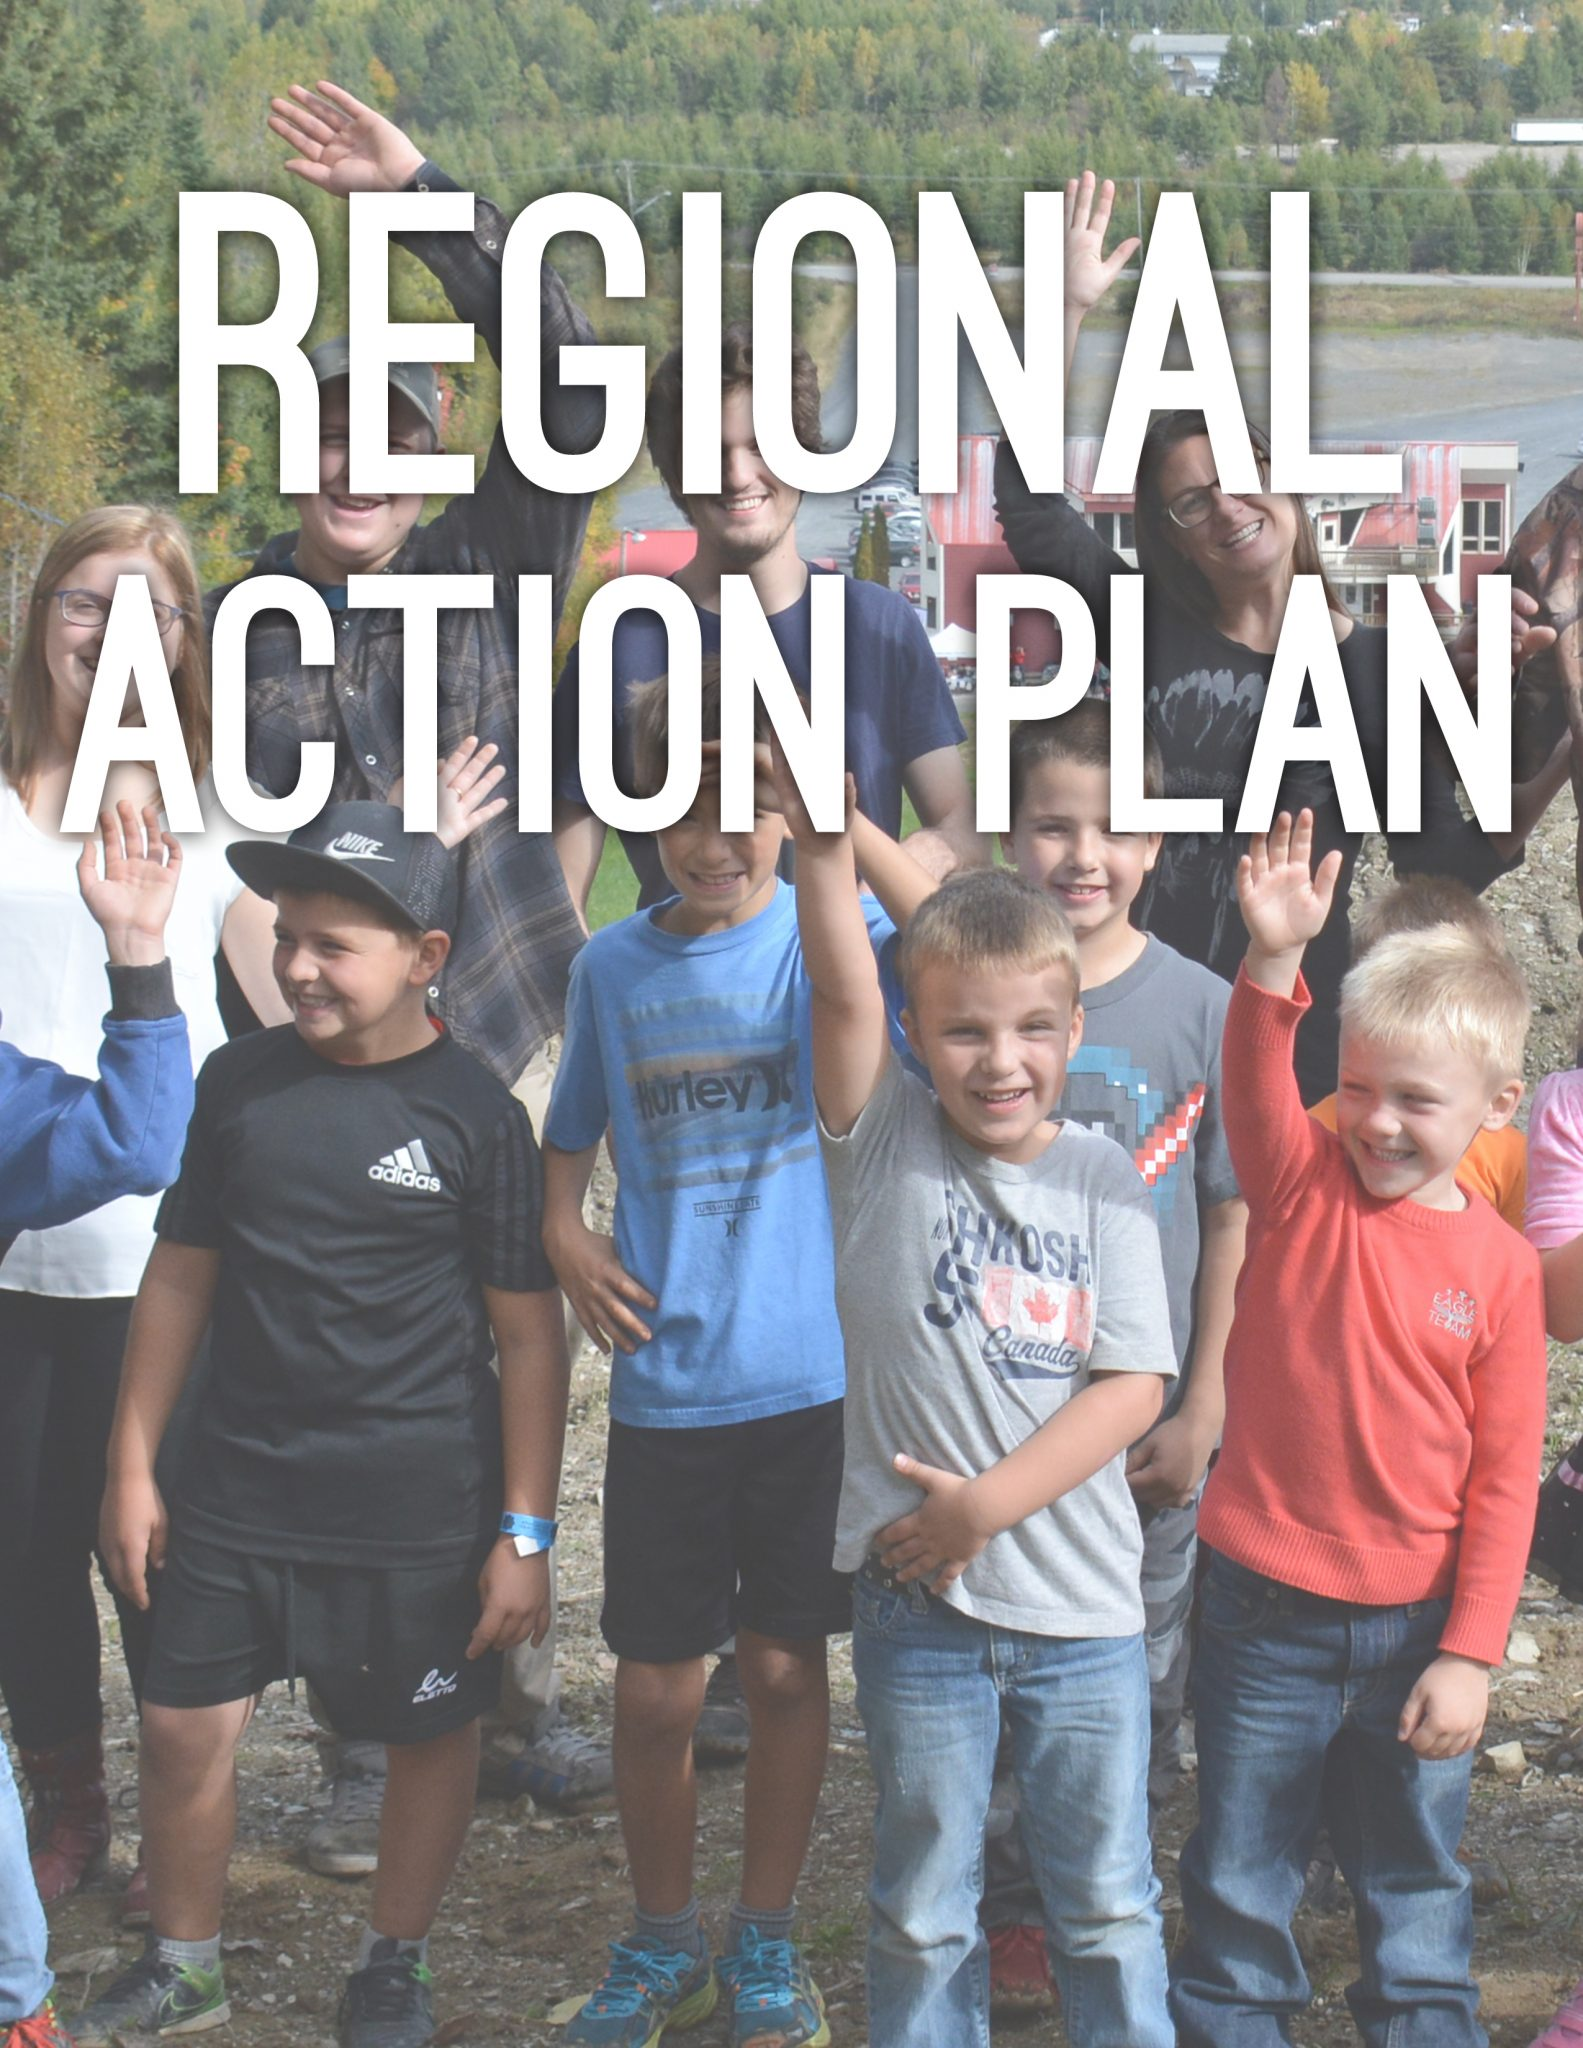 North West Action Plan